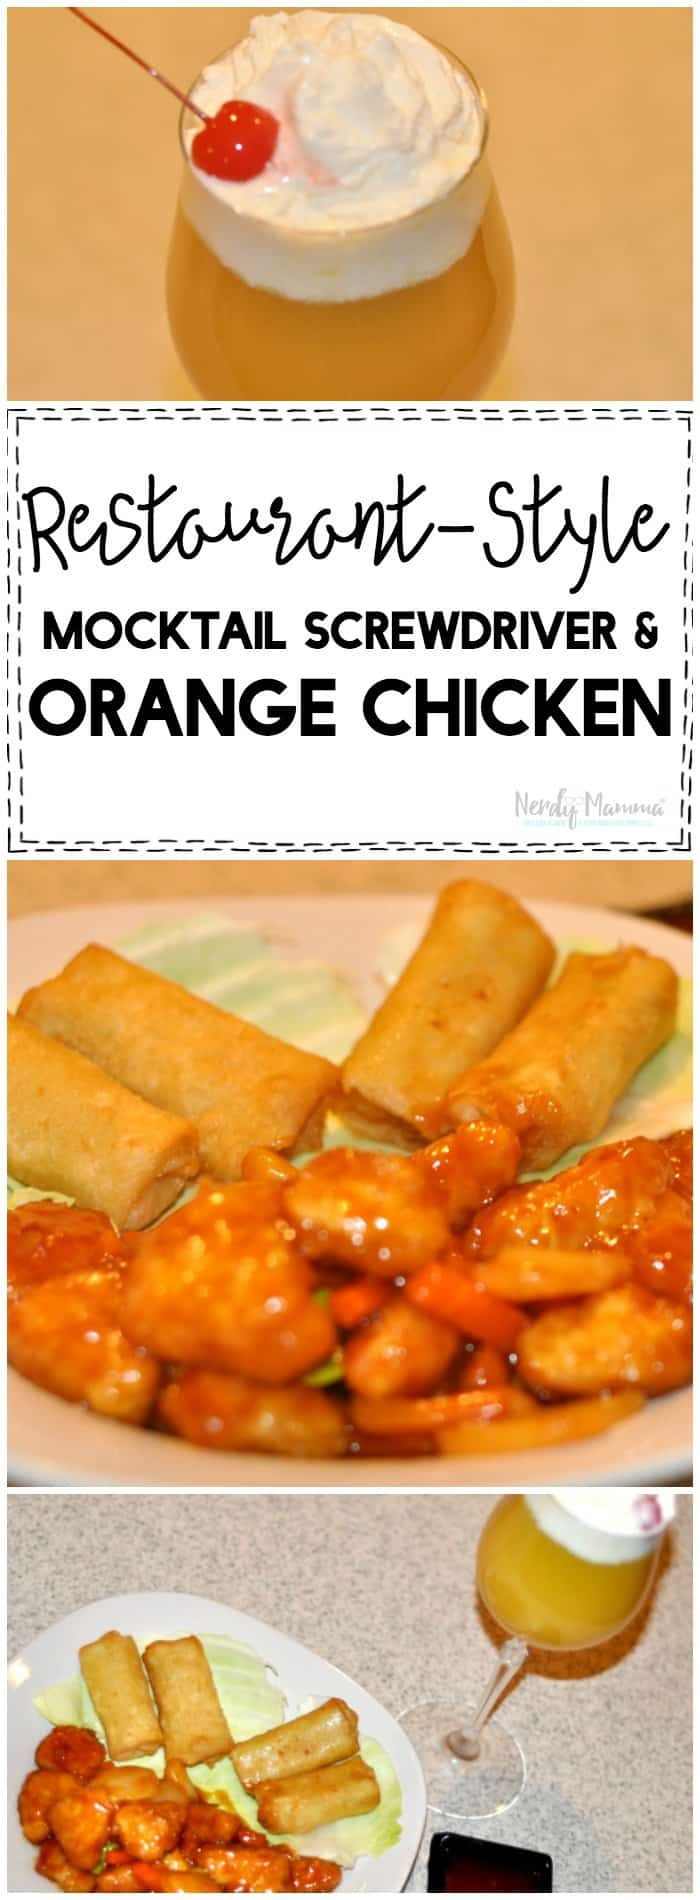 OMG! This mocktail is AMAZEBALLS! I LOVE this orange chicken too! Perfect date night recipe!